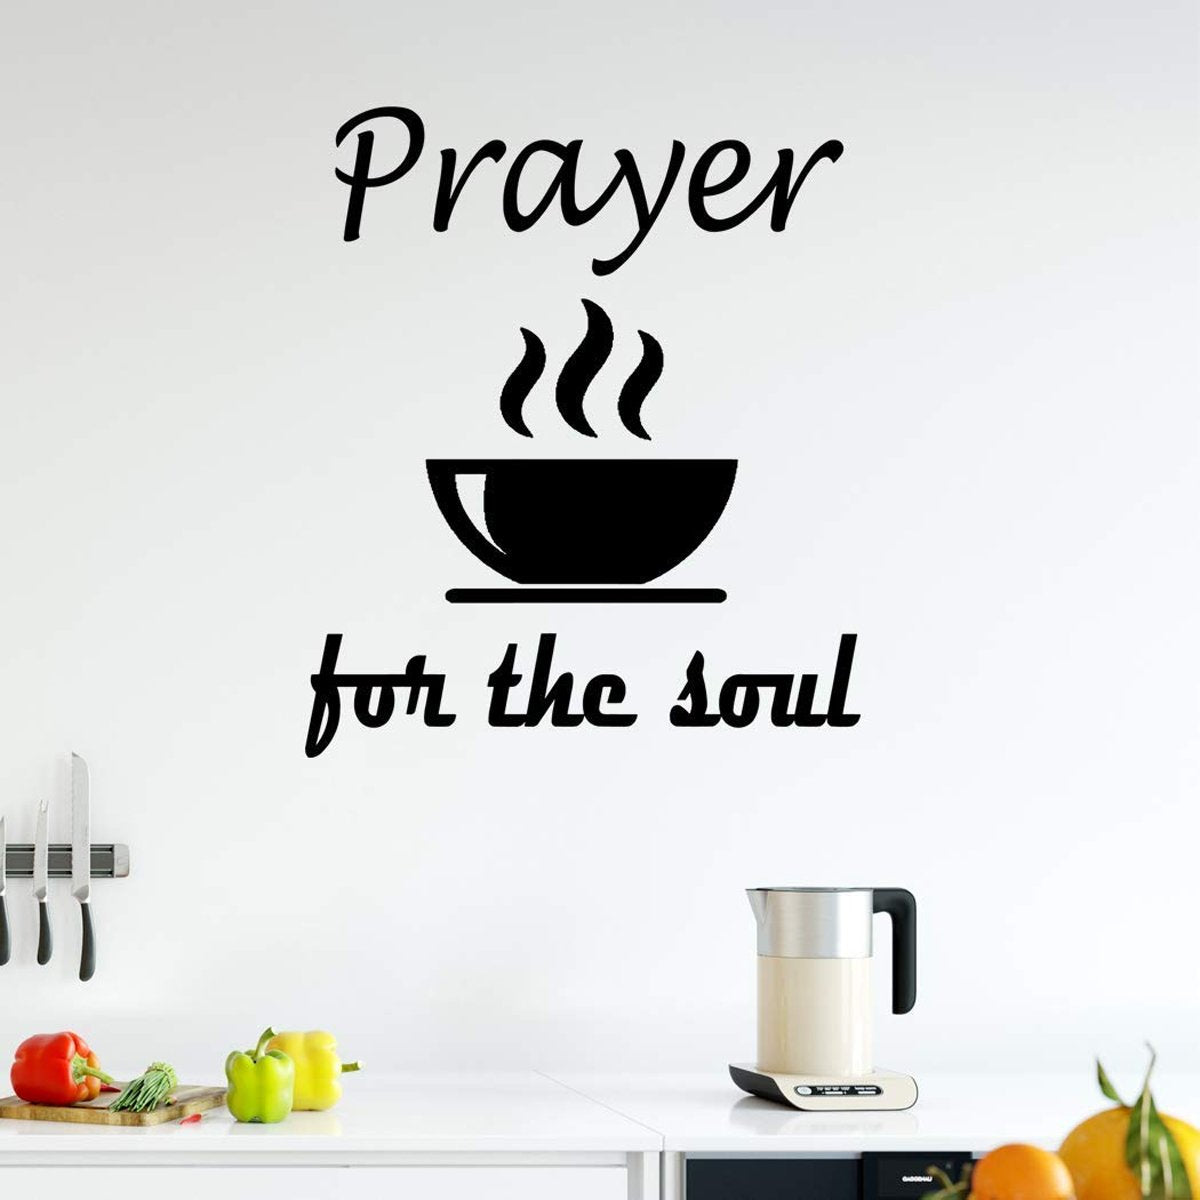 Prayer Soup The Soul Wall Art Decal Decor, Prayer Vinyl Wall Quote Stickers